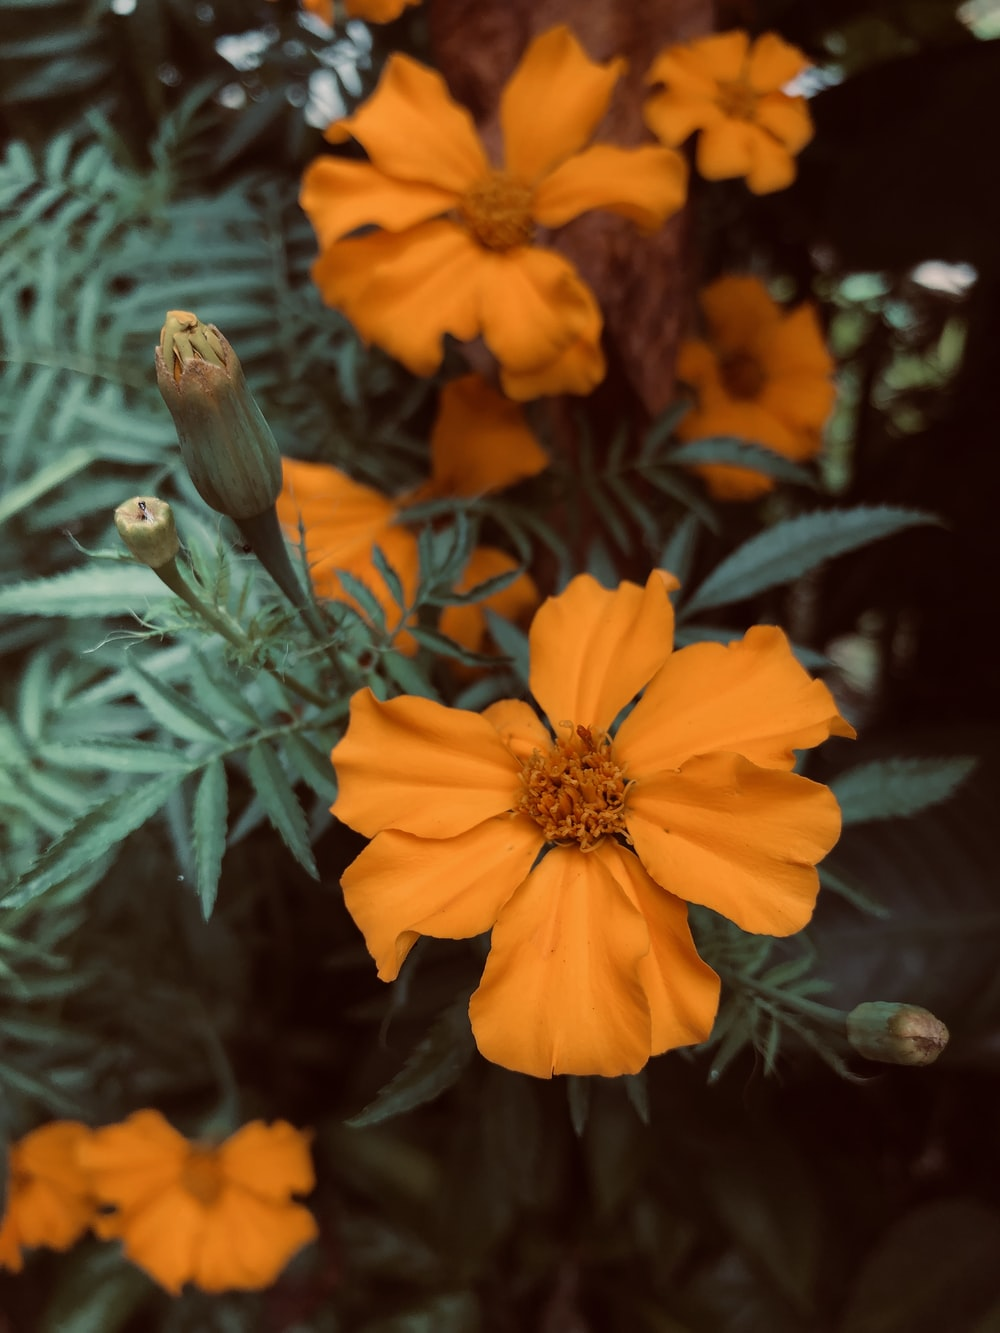 orange-petaled flowers with leaves